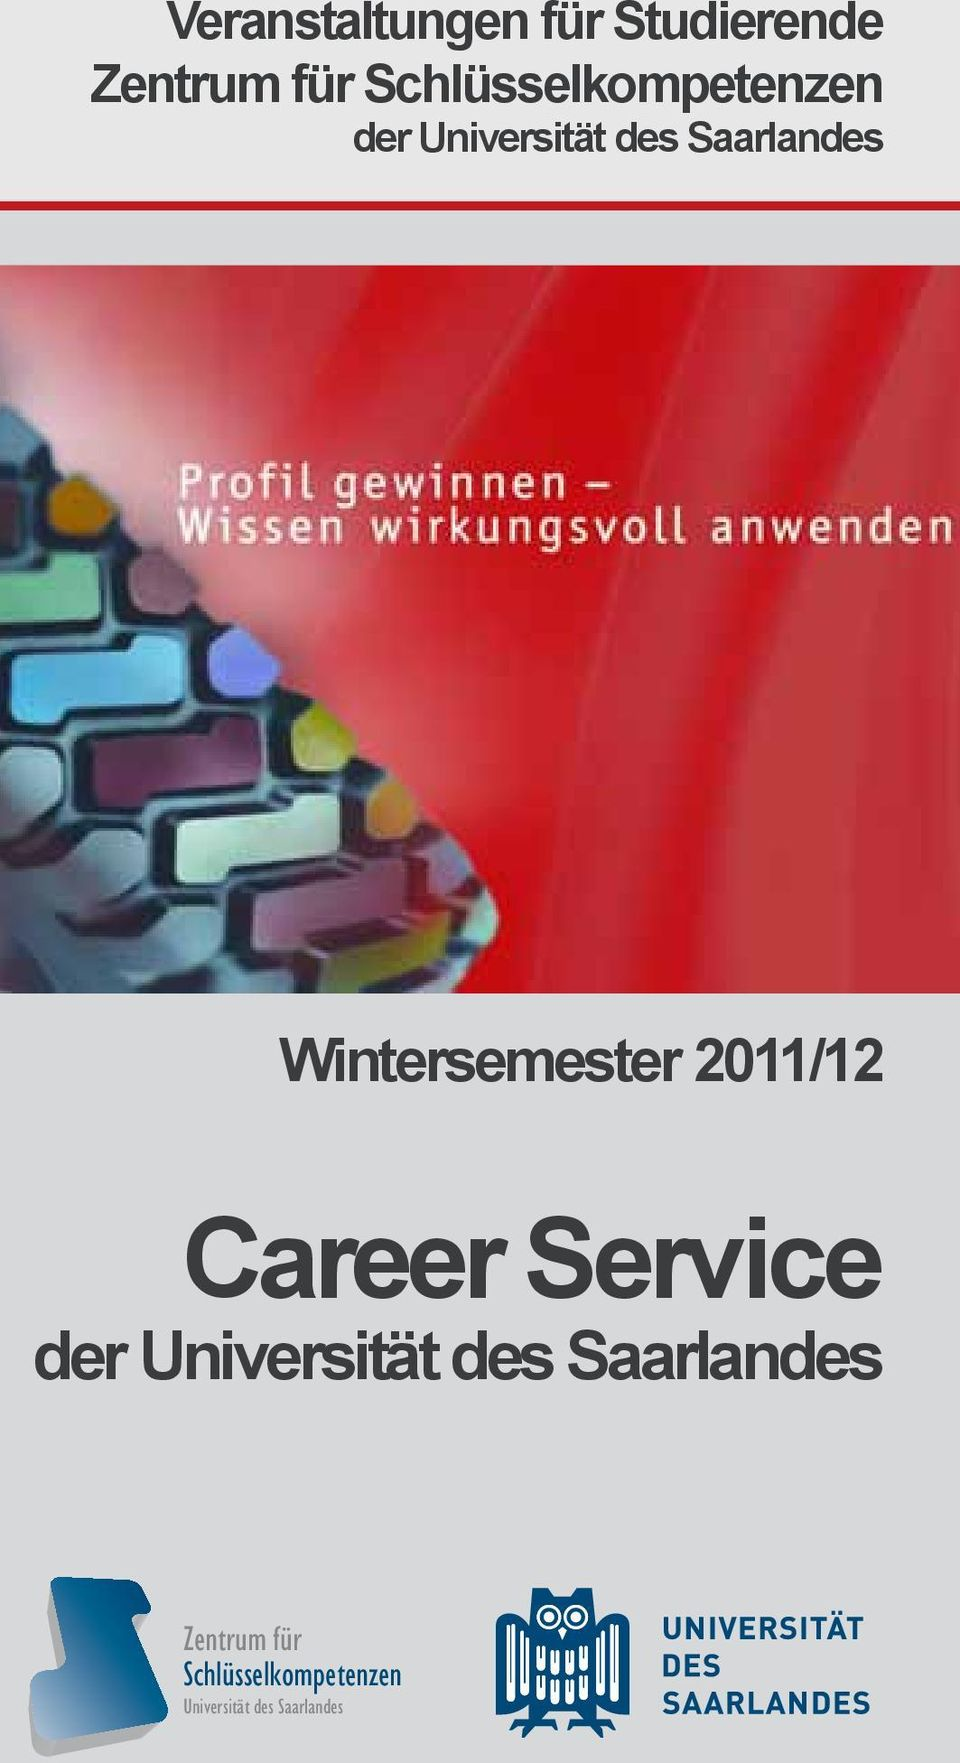 Wintersemester 2011/12 Career Service der Universität